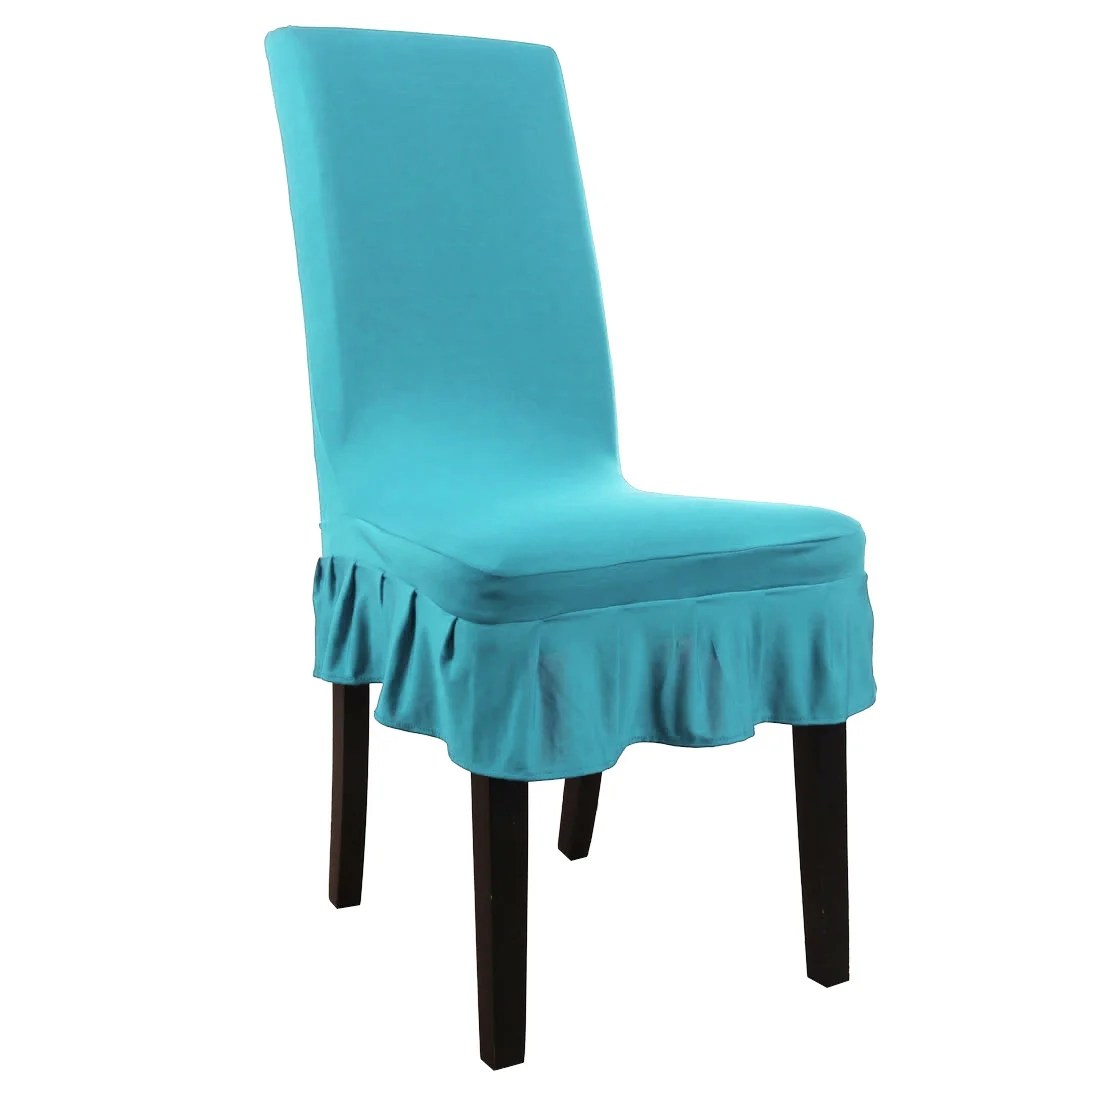 aqua dining room chair covers swimways premium canopy shop stretch spandex short free shipping on orders over 45 overstock com 27281899